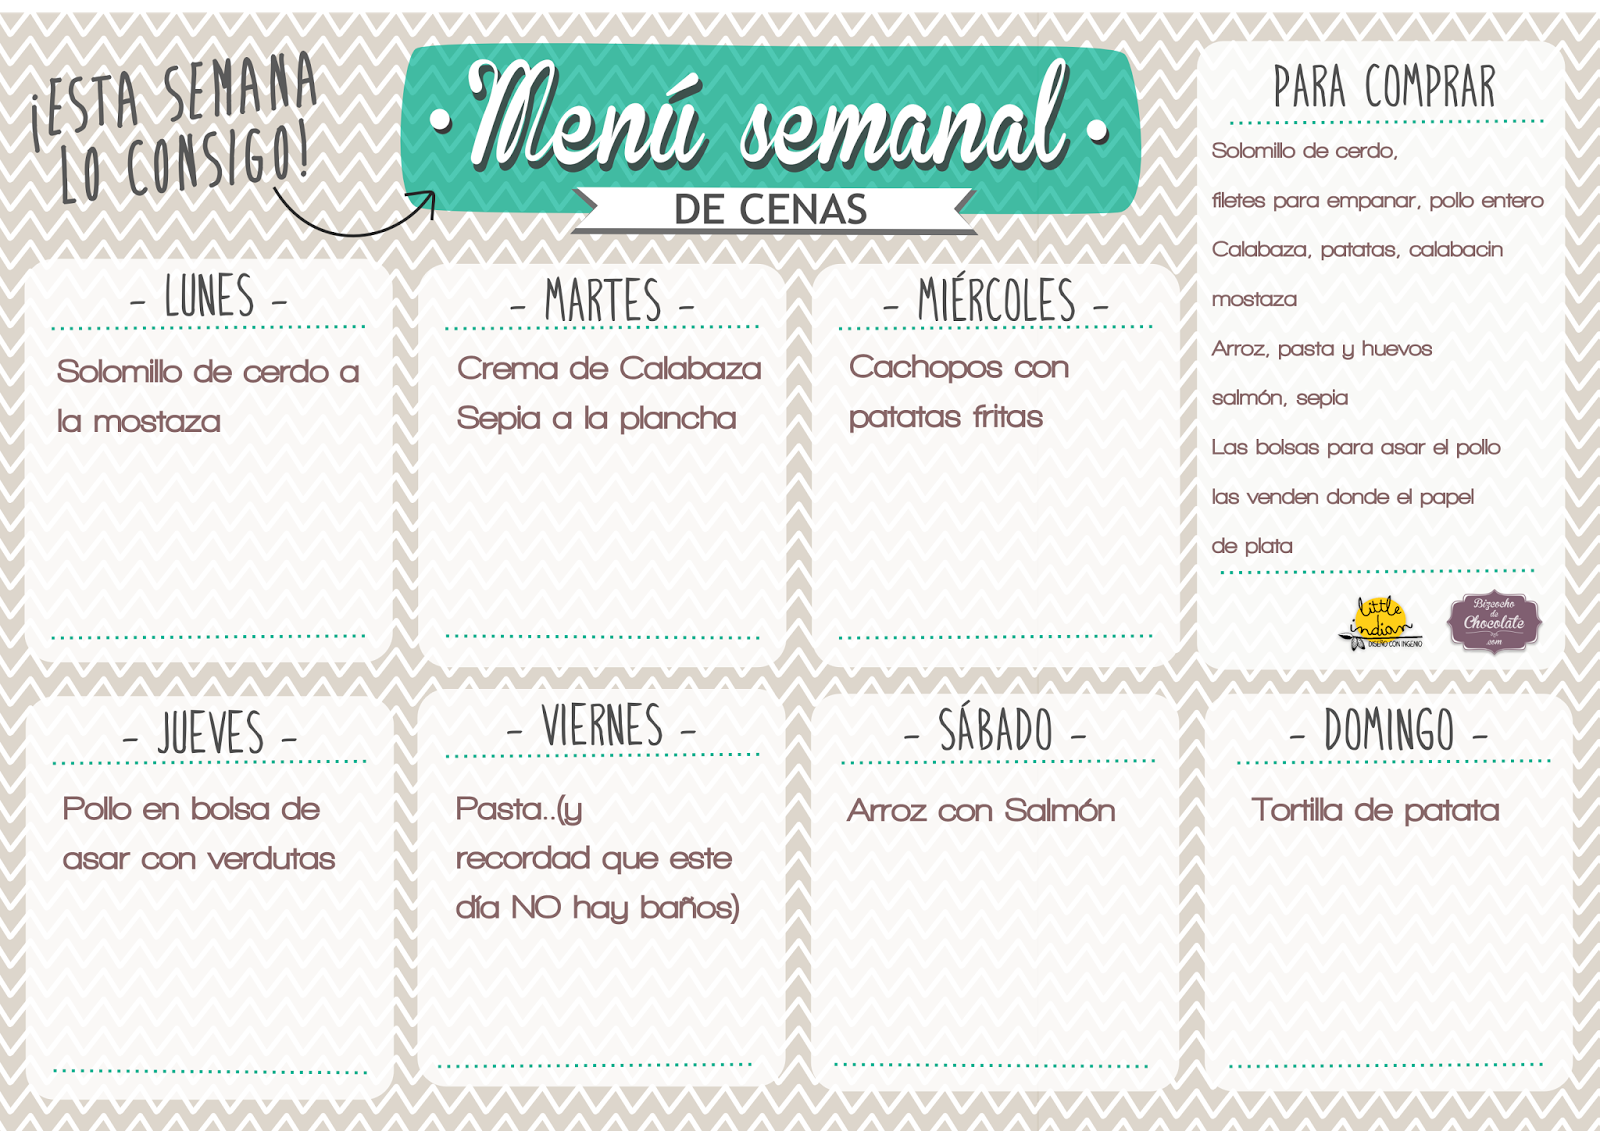 Menu semanal 17 1600 1131 hogares pinterest for Menu semanal verano